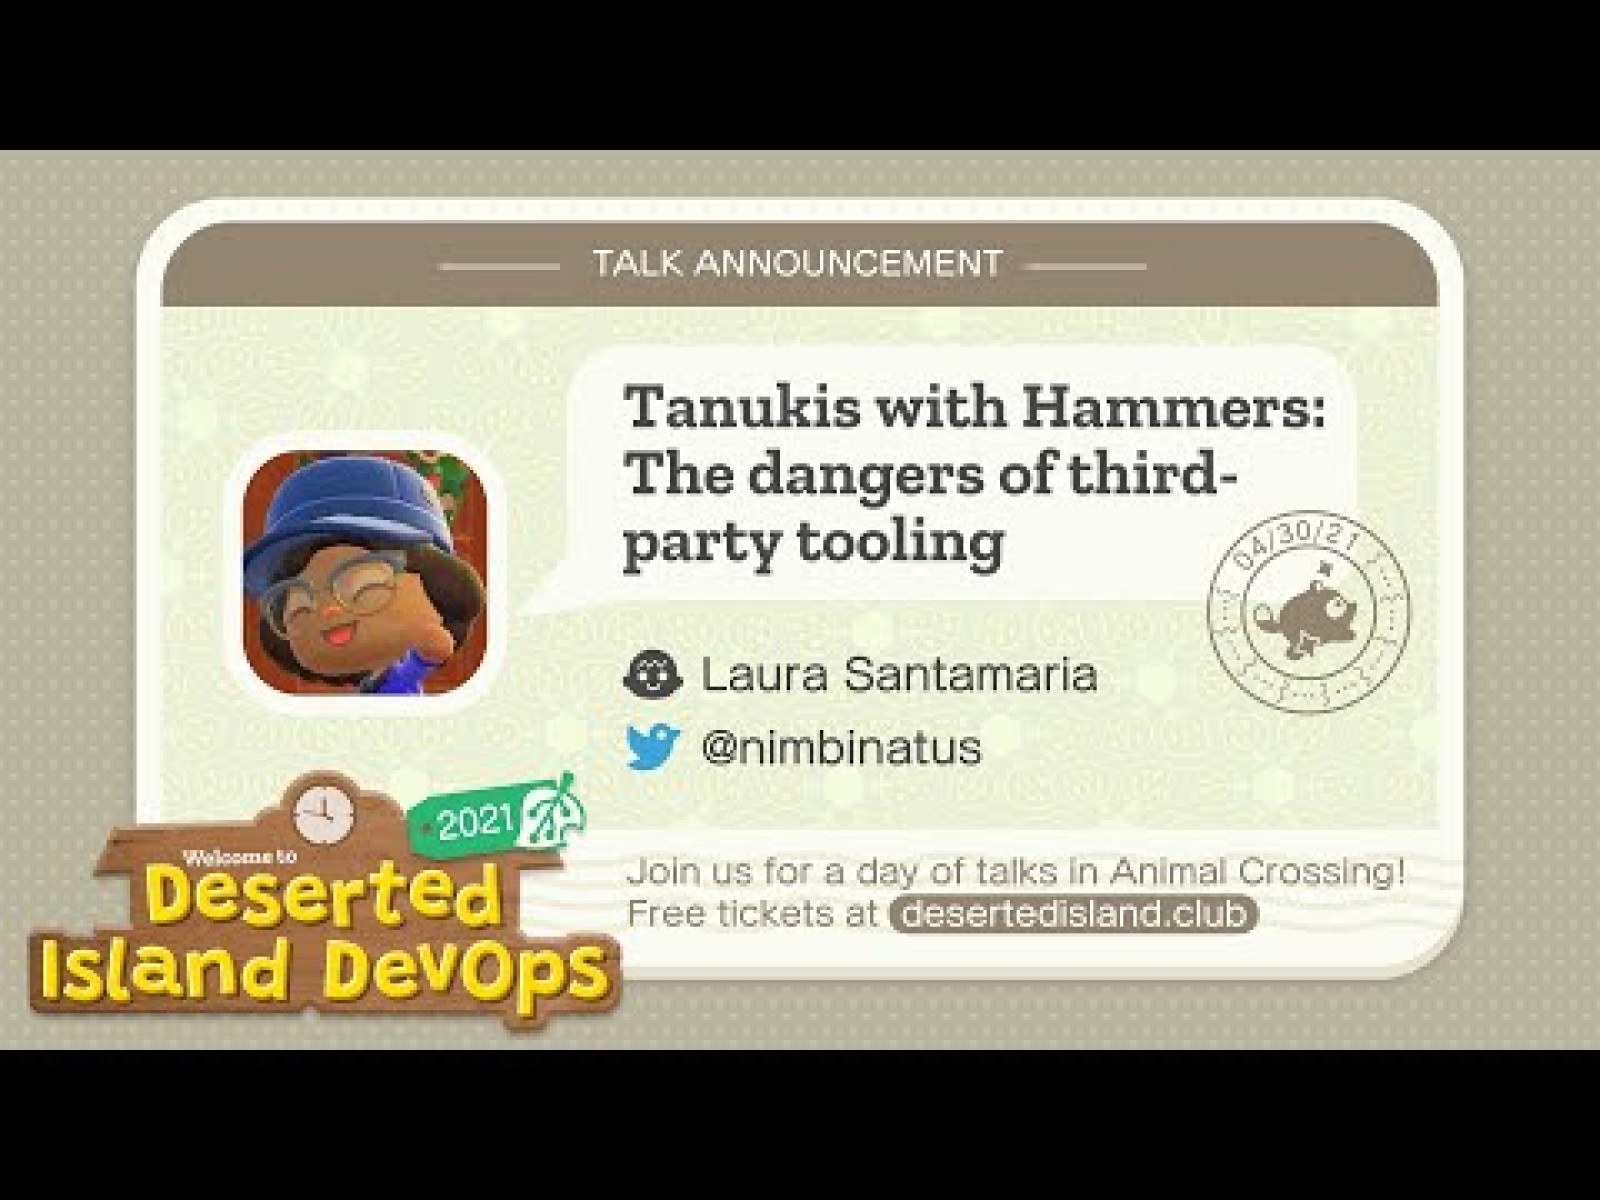 Tanukis with Hammers: The dangers of third-party tooling